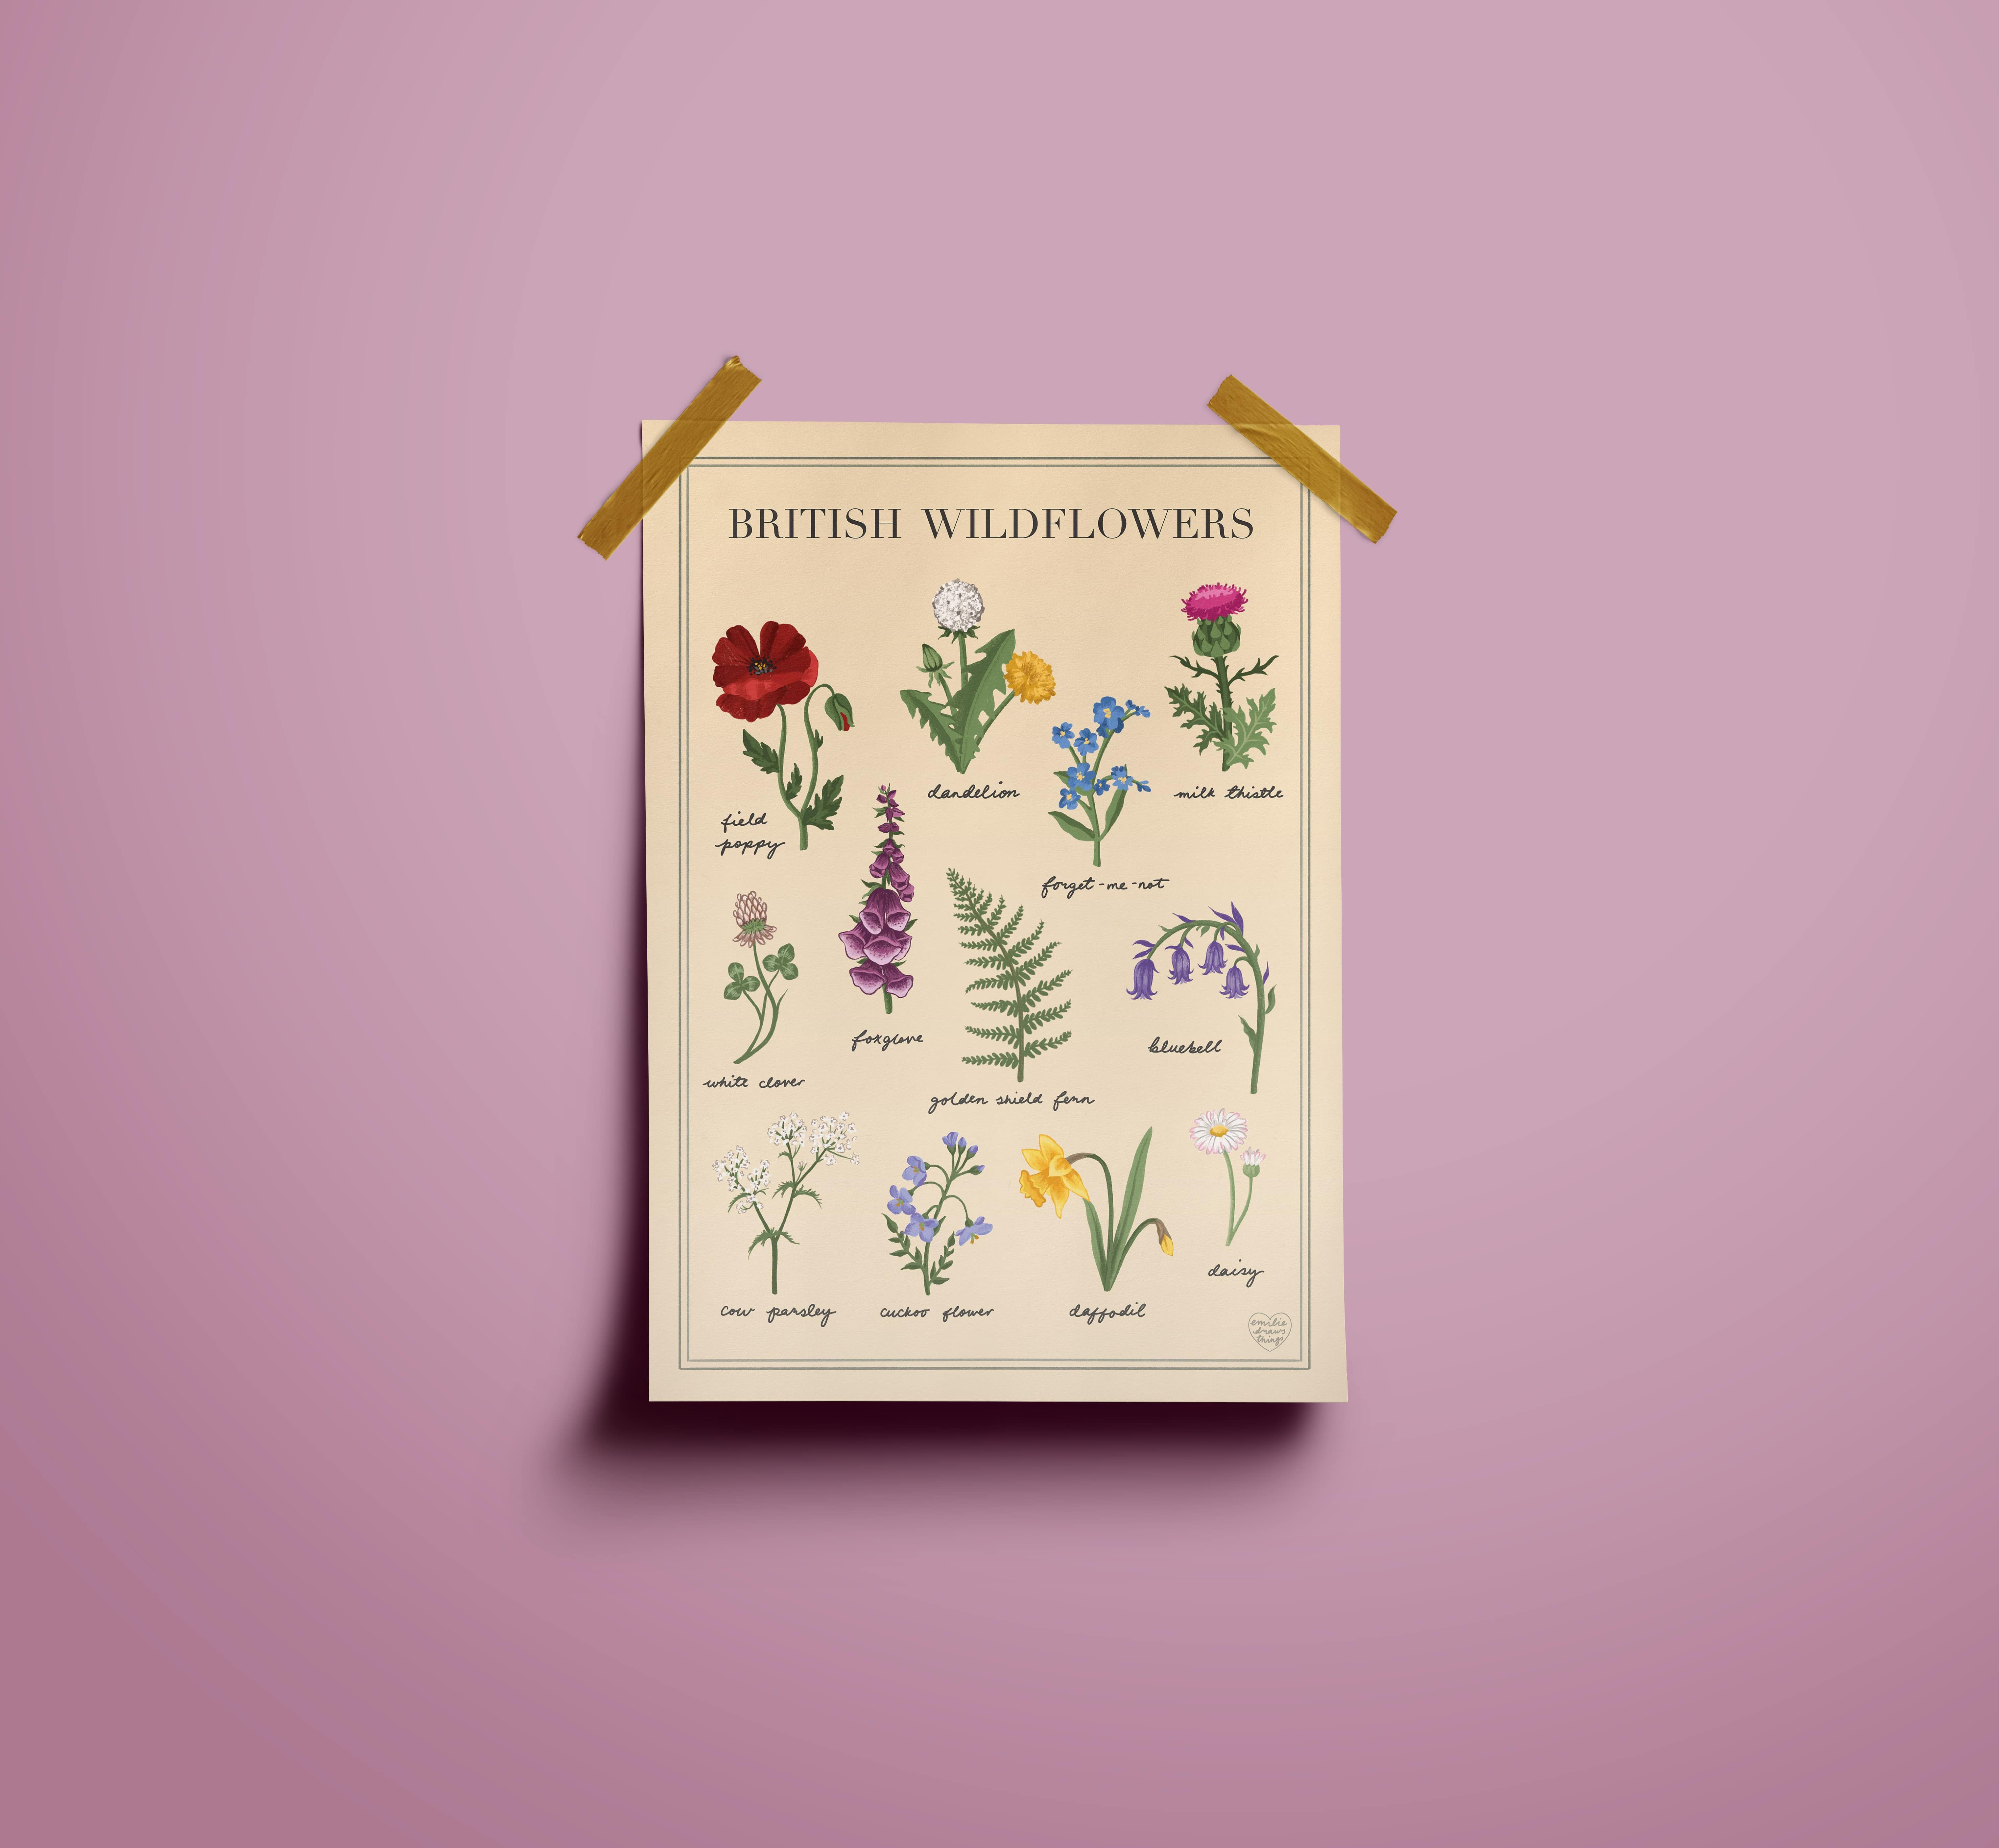 British Wildflowers Illustrated Art Print A3 A4 | Vintage Cottagecore Wall Decor